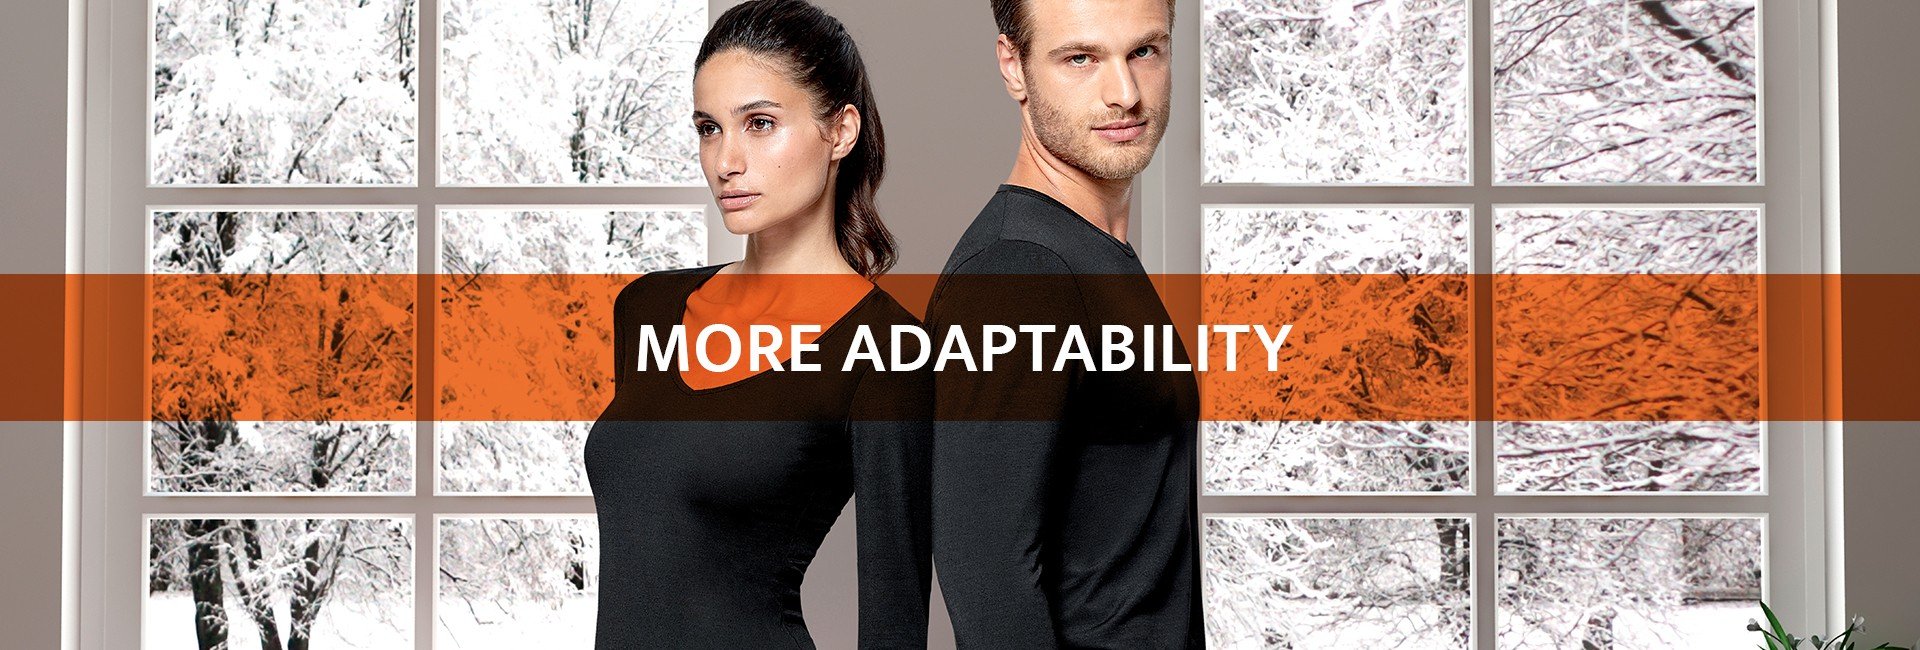 More elasticity | More adaptability | More mobility | More comfort | Thermal underwear_1